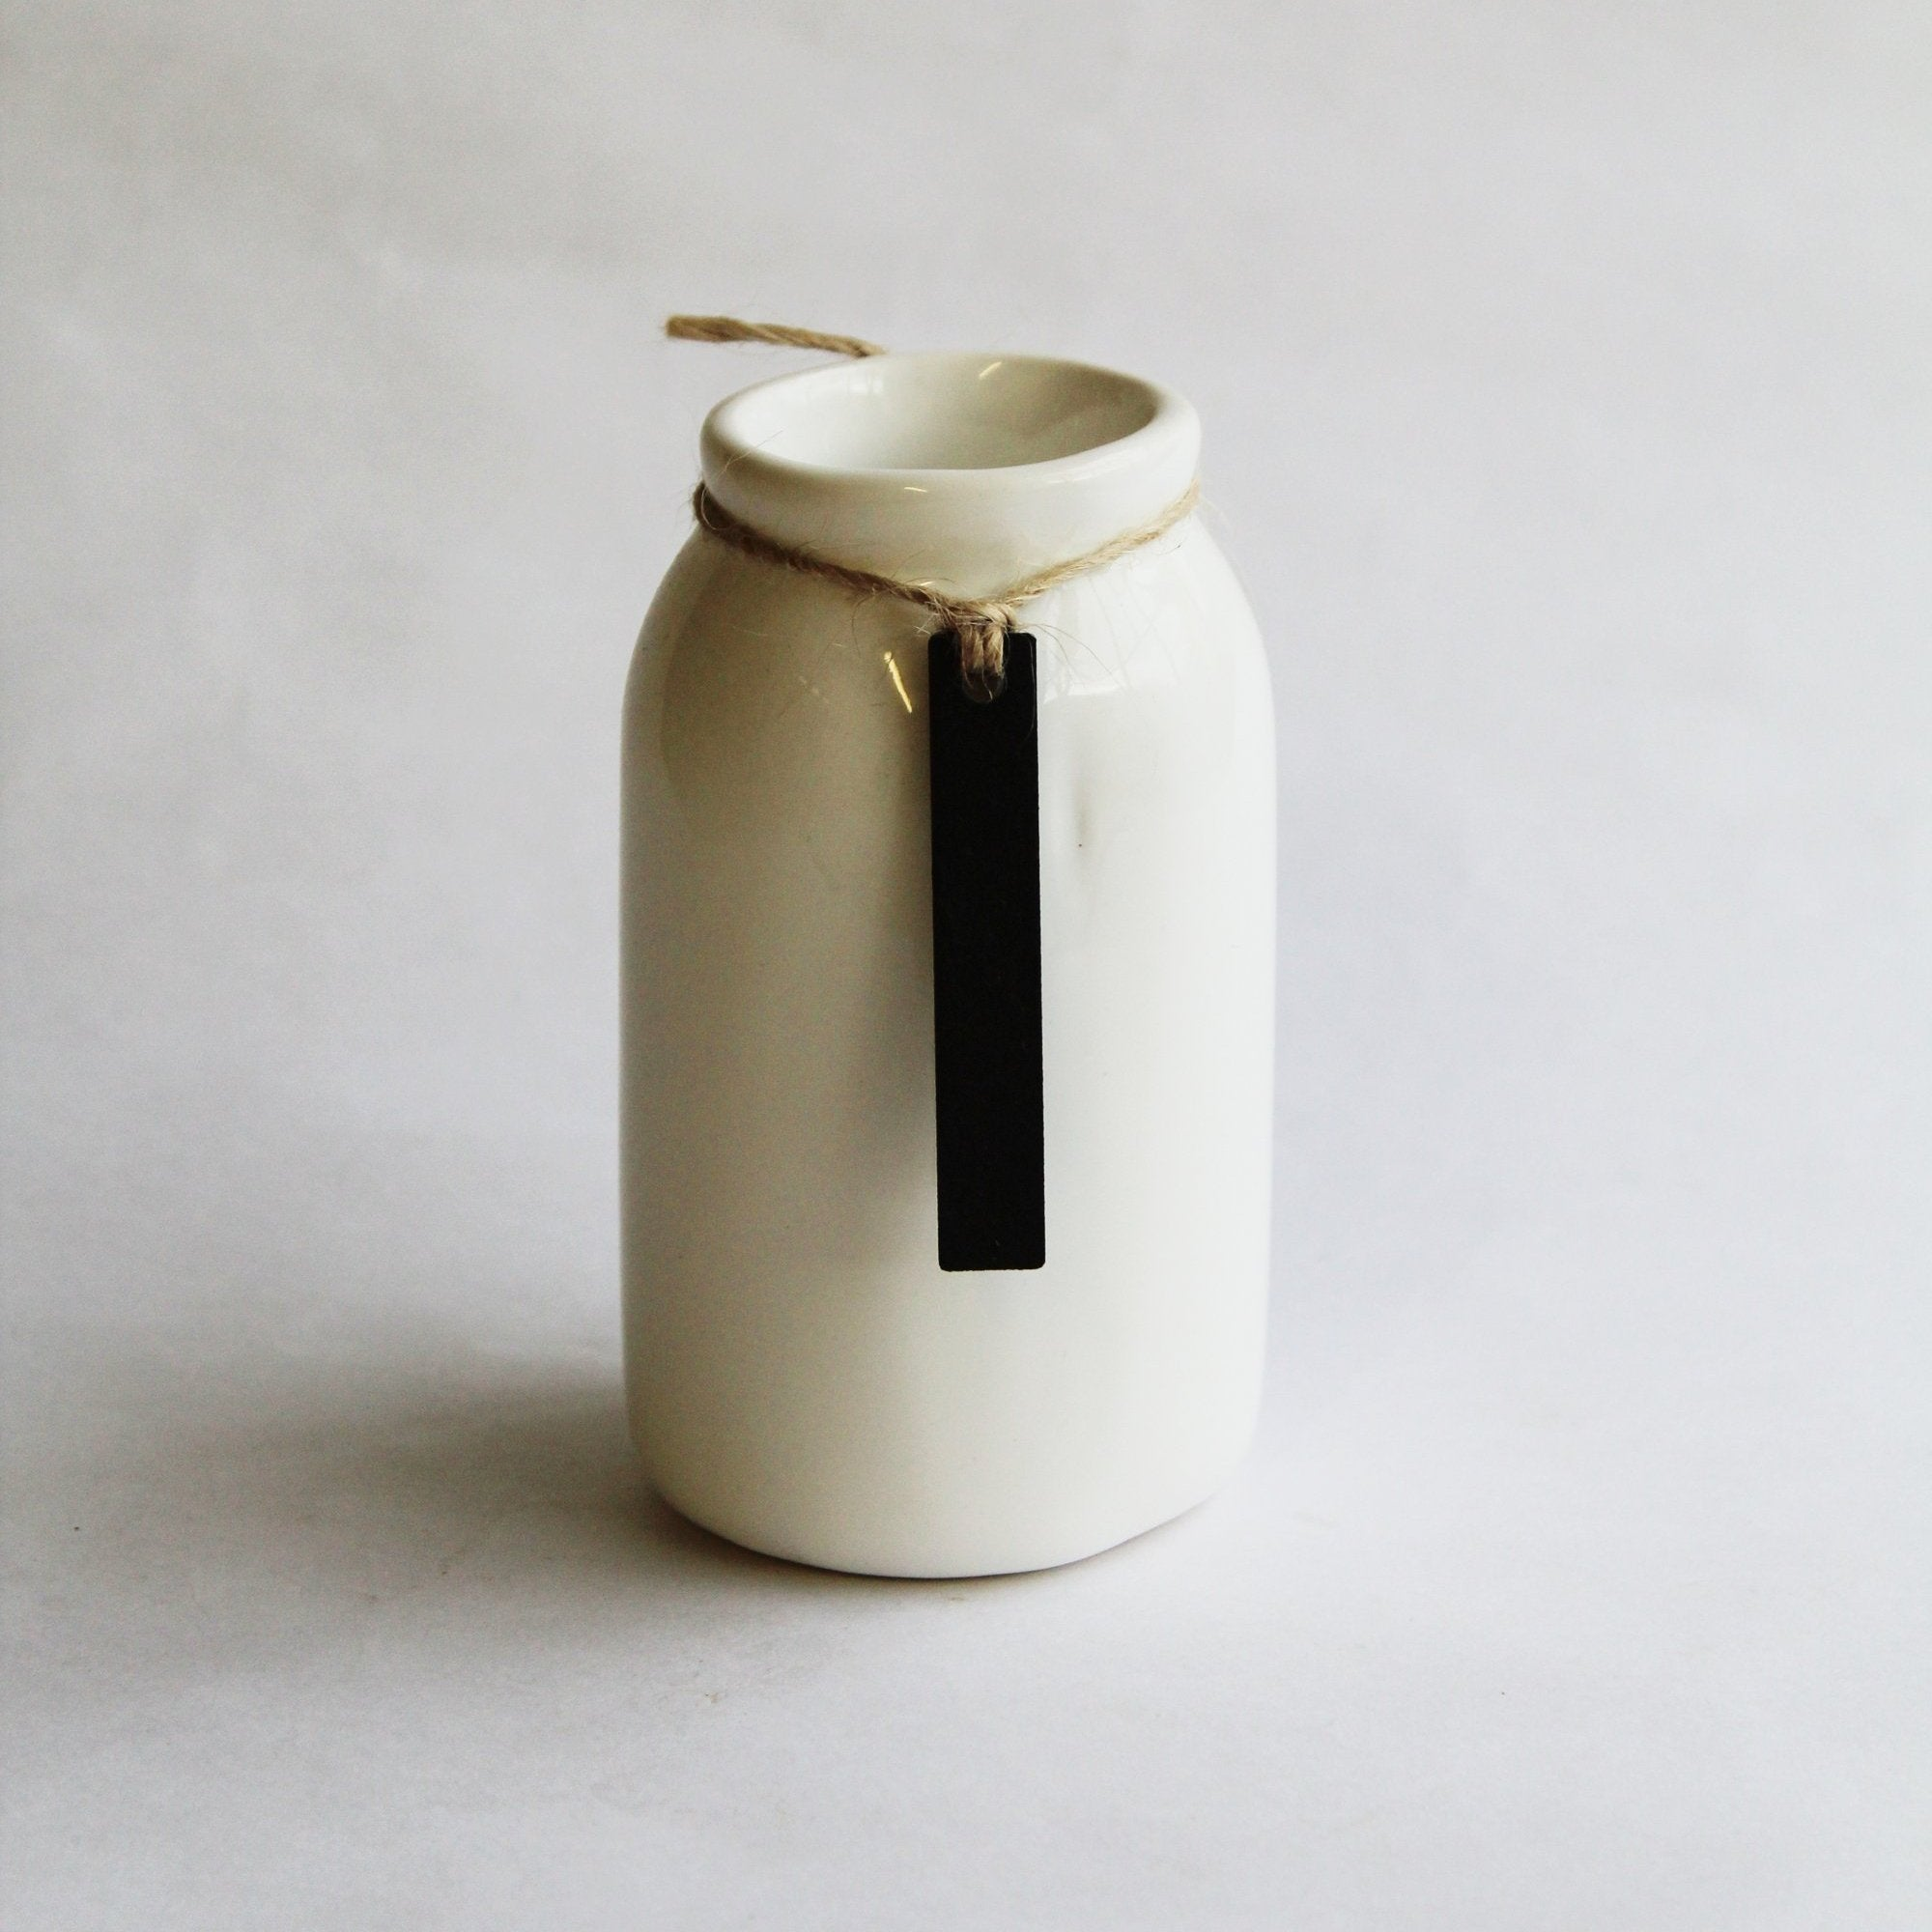 ceramic bottle for diffuser reeds-Rain Africa